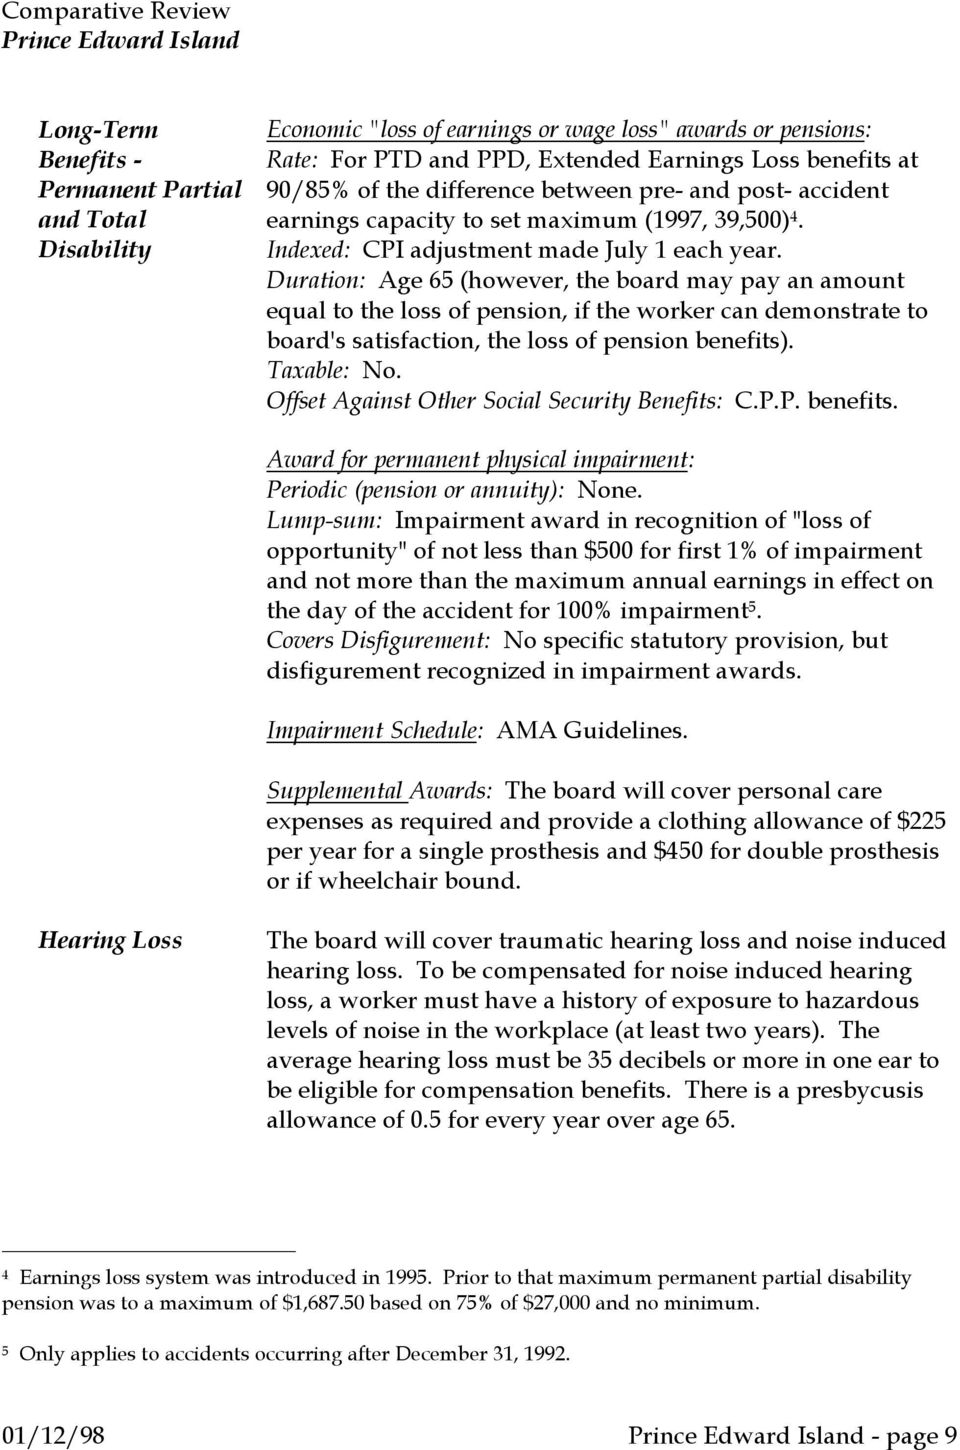 Duration: Age 65 (however, the board may pay an amount equal to the loss of pension, if the worker can demonstrate to board's satisfaction, the loss of pension benefits). Taxable: No.